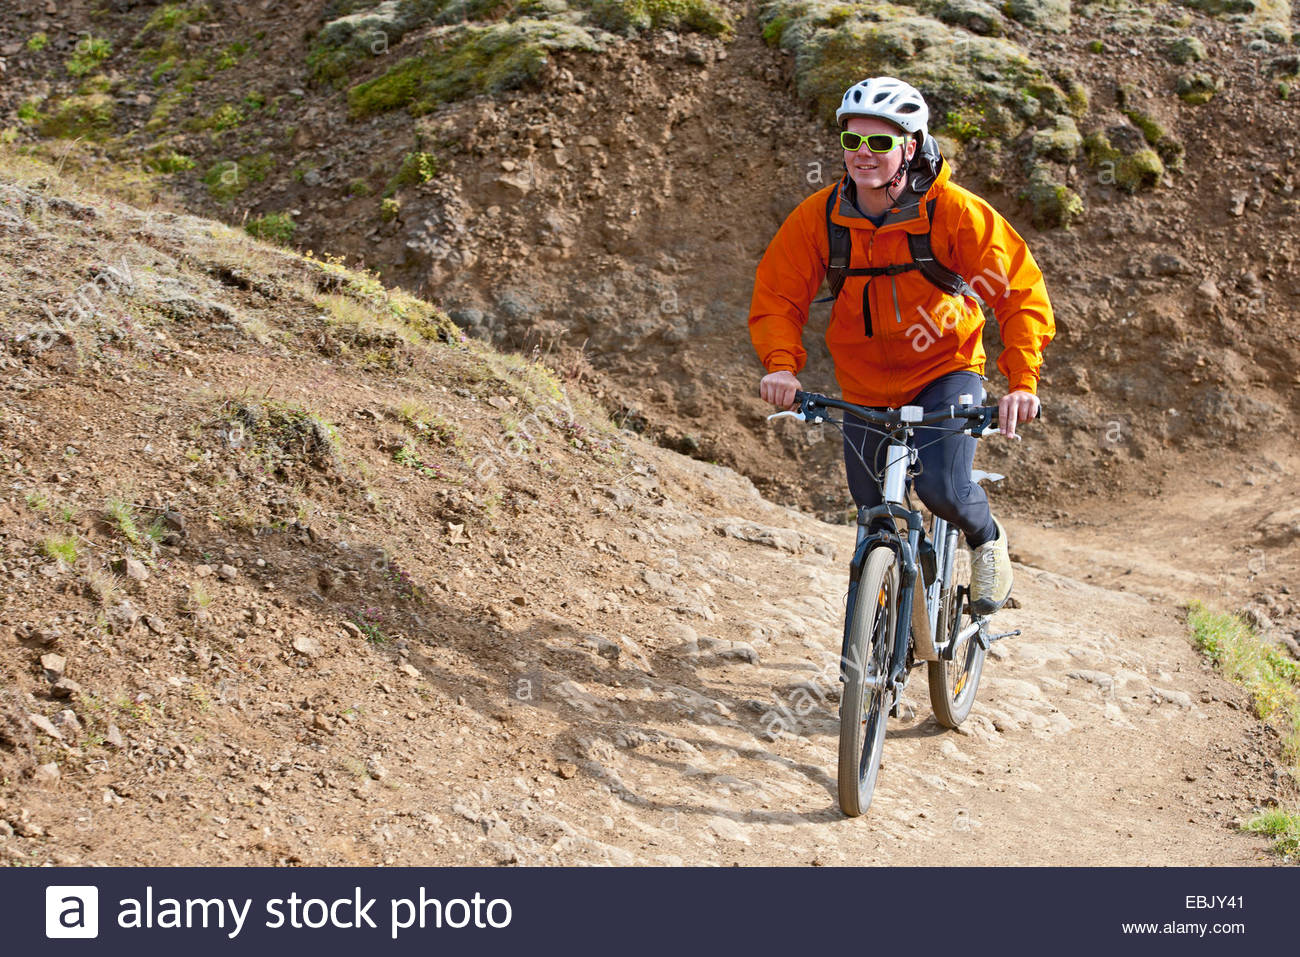 Young male mountain biker cycling up dirt track, Reykjadalur valley, South West Iceland - Stock Image